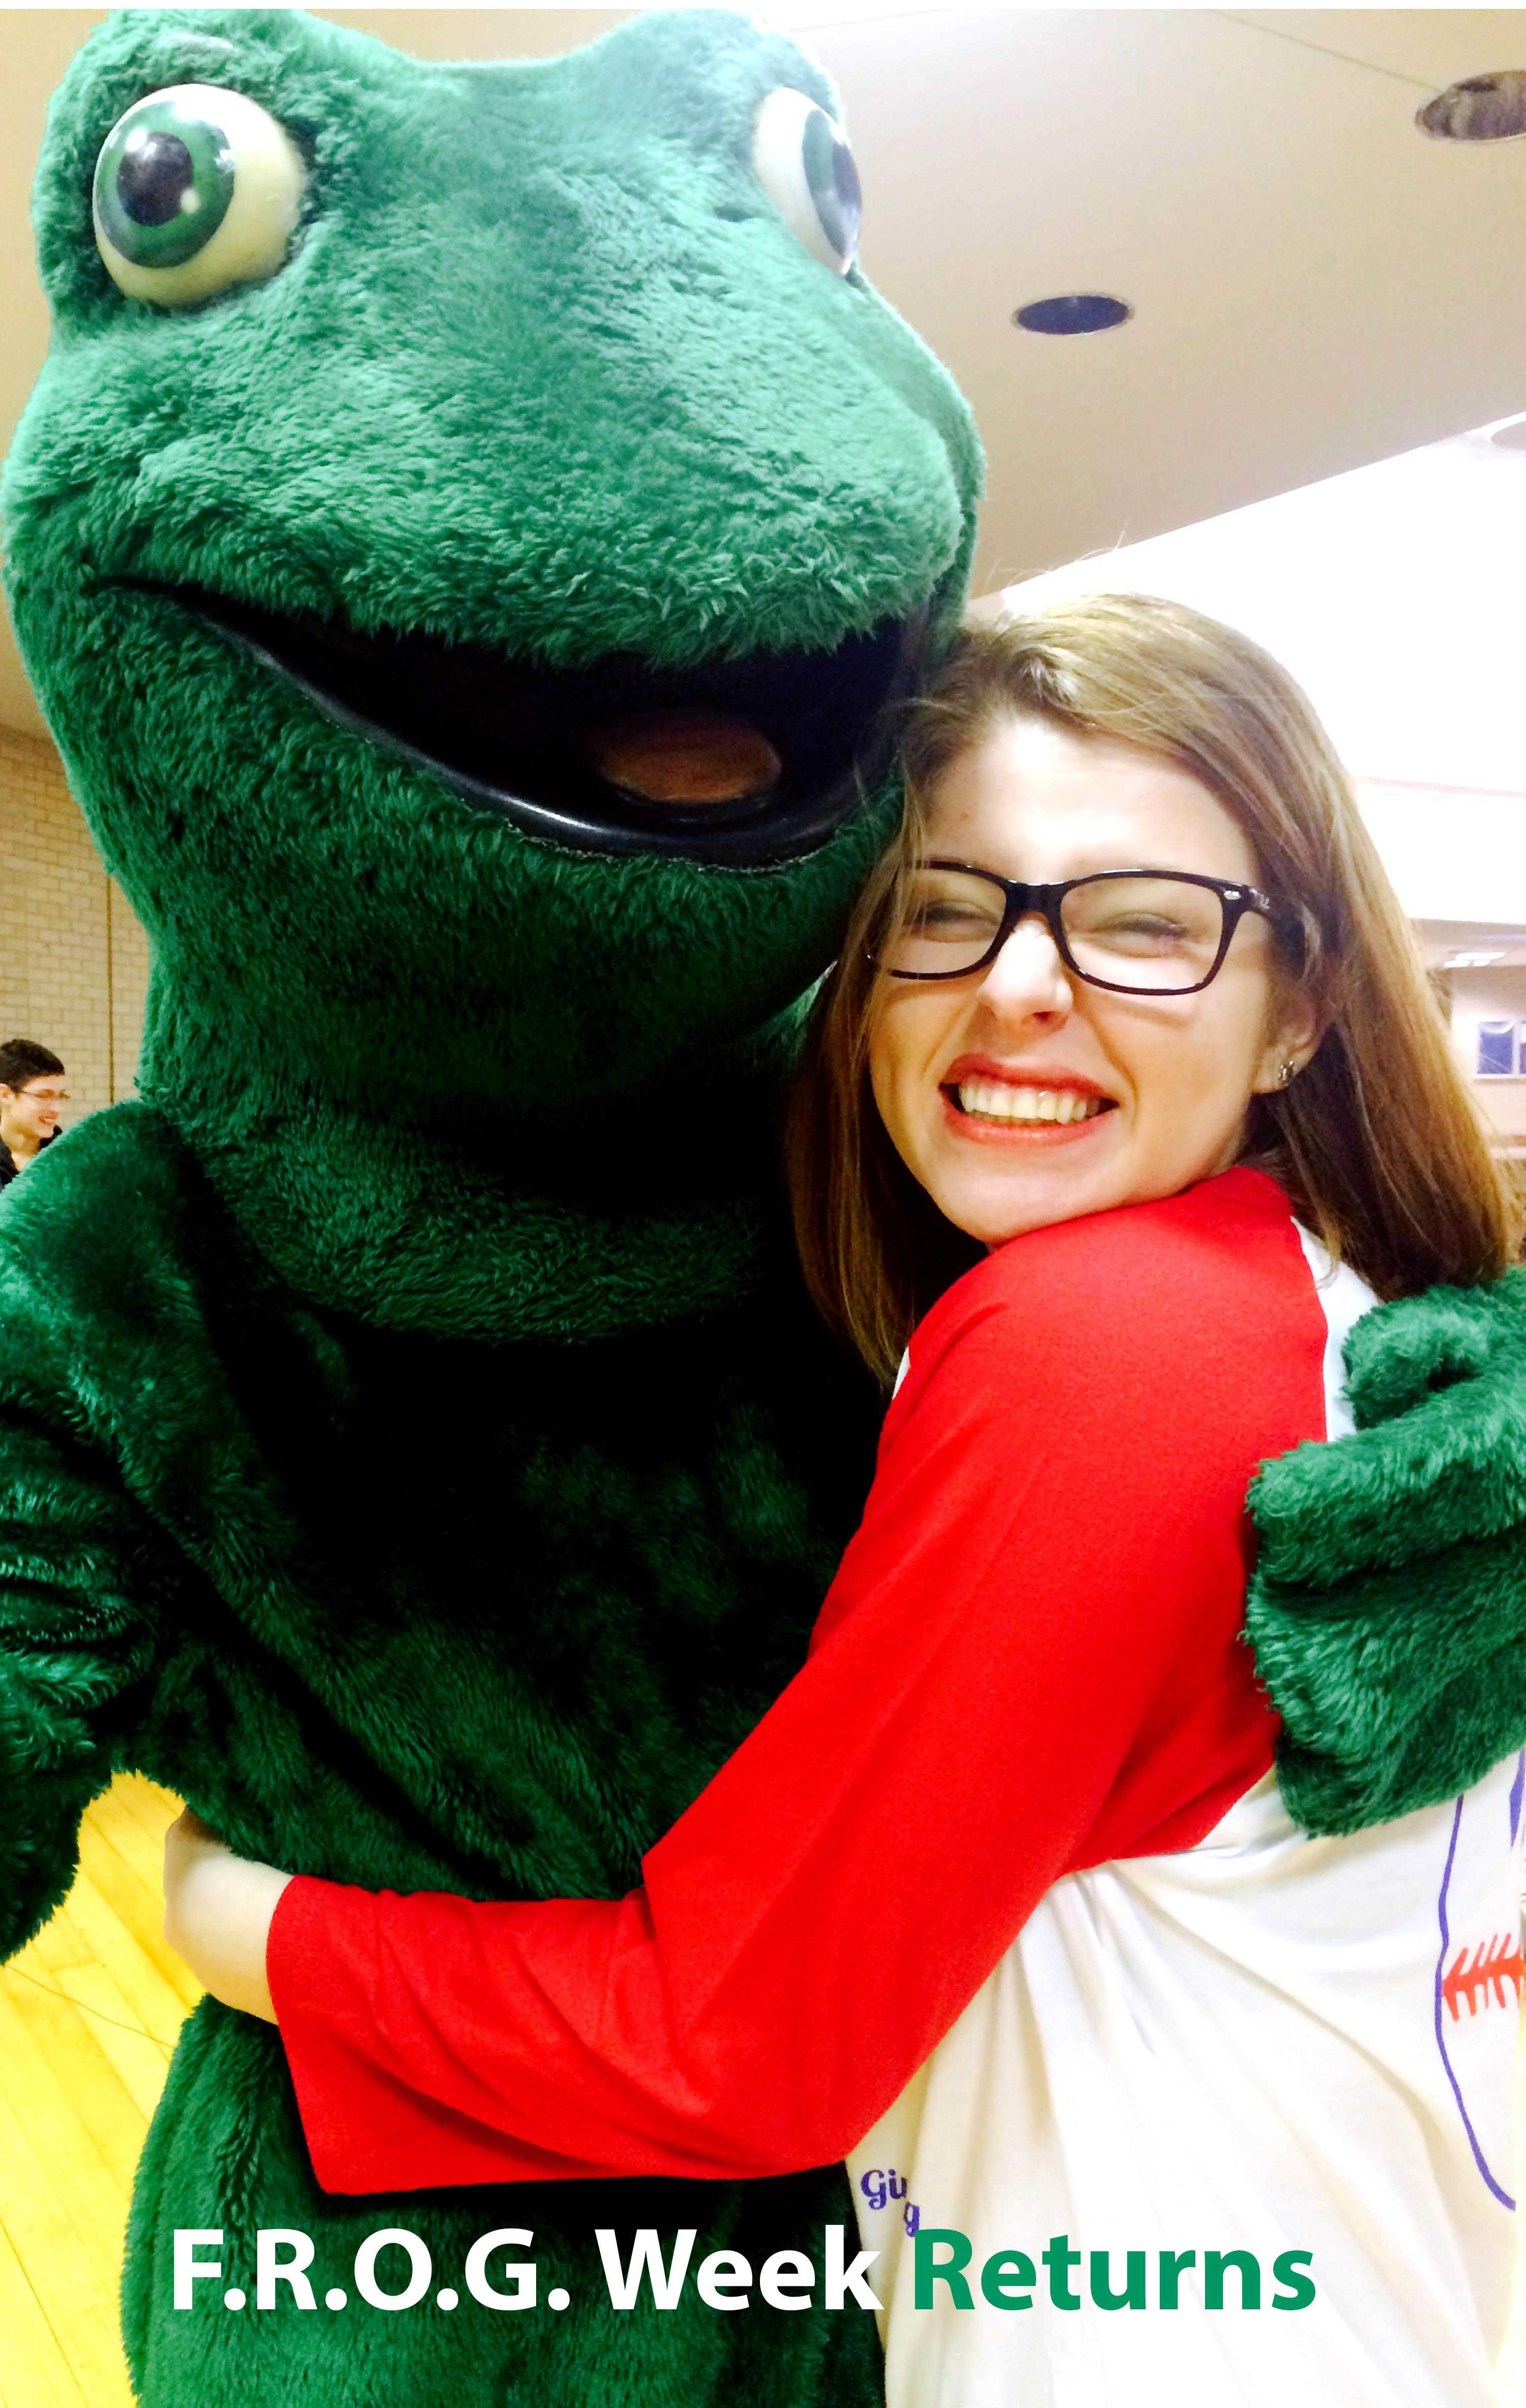 Brittnee Tapia hugging the Frog and showing her Summit Love. In the cafeteria February 20,2015